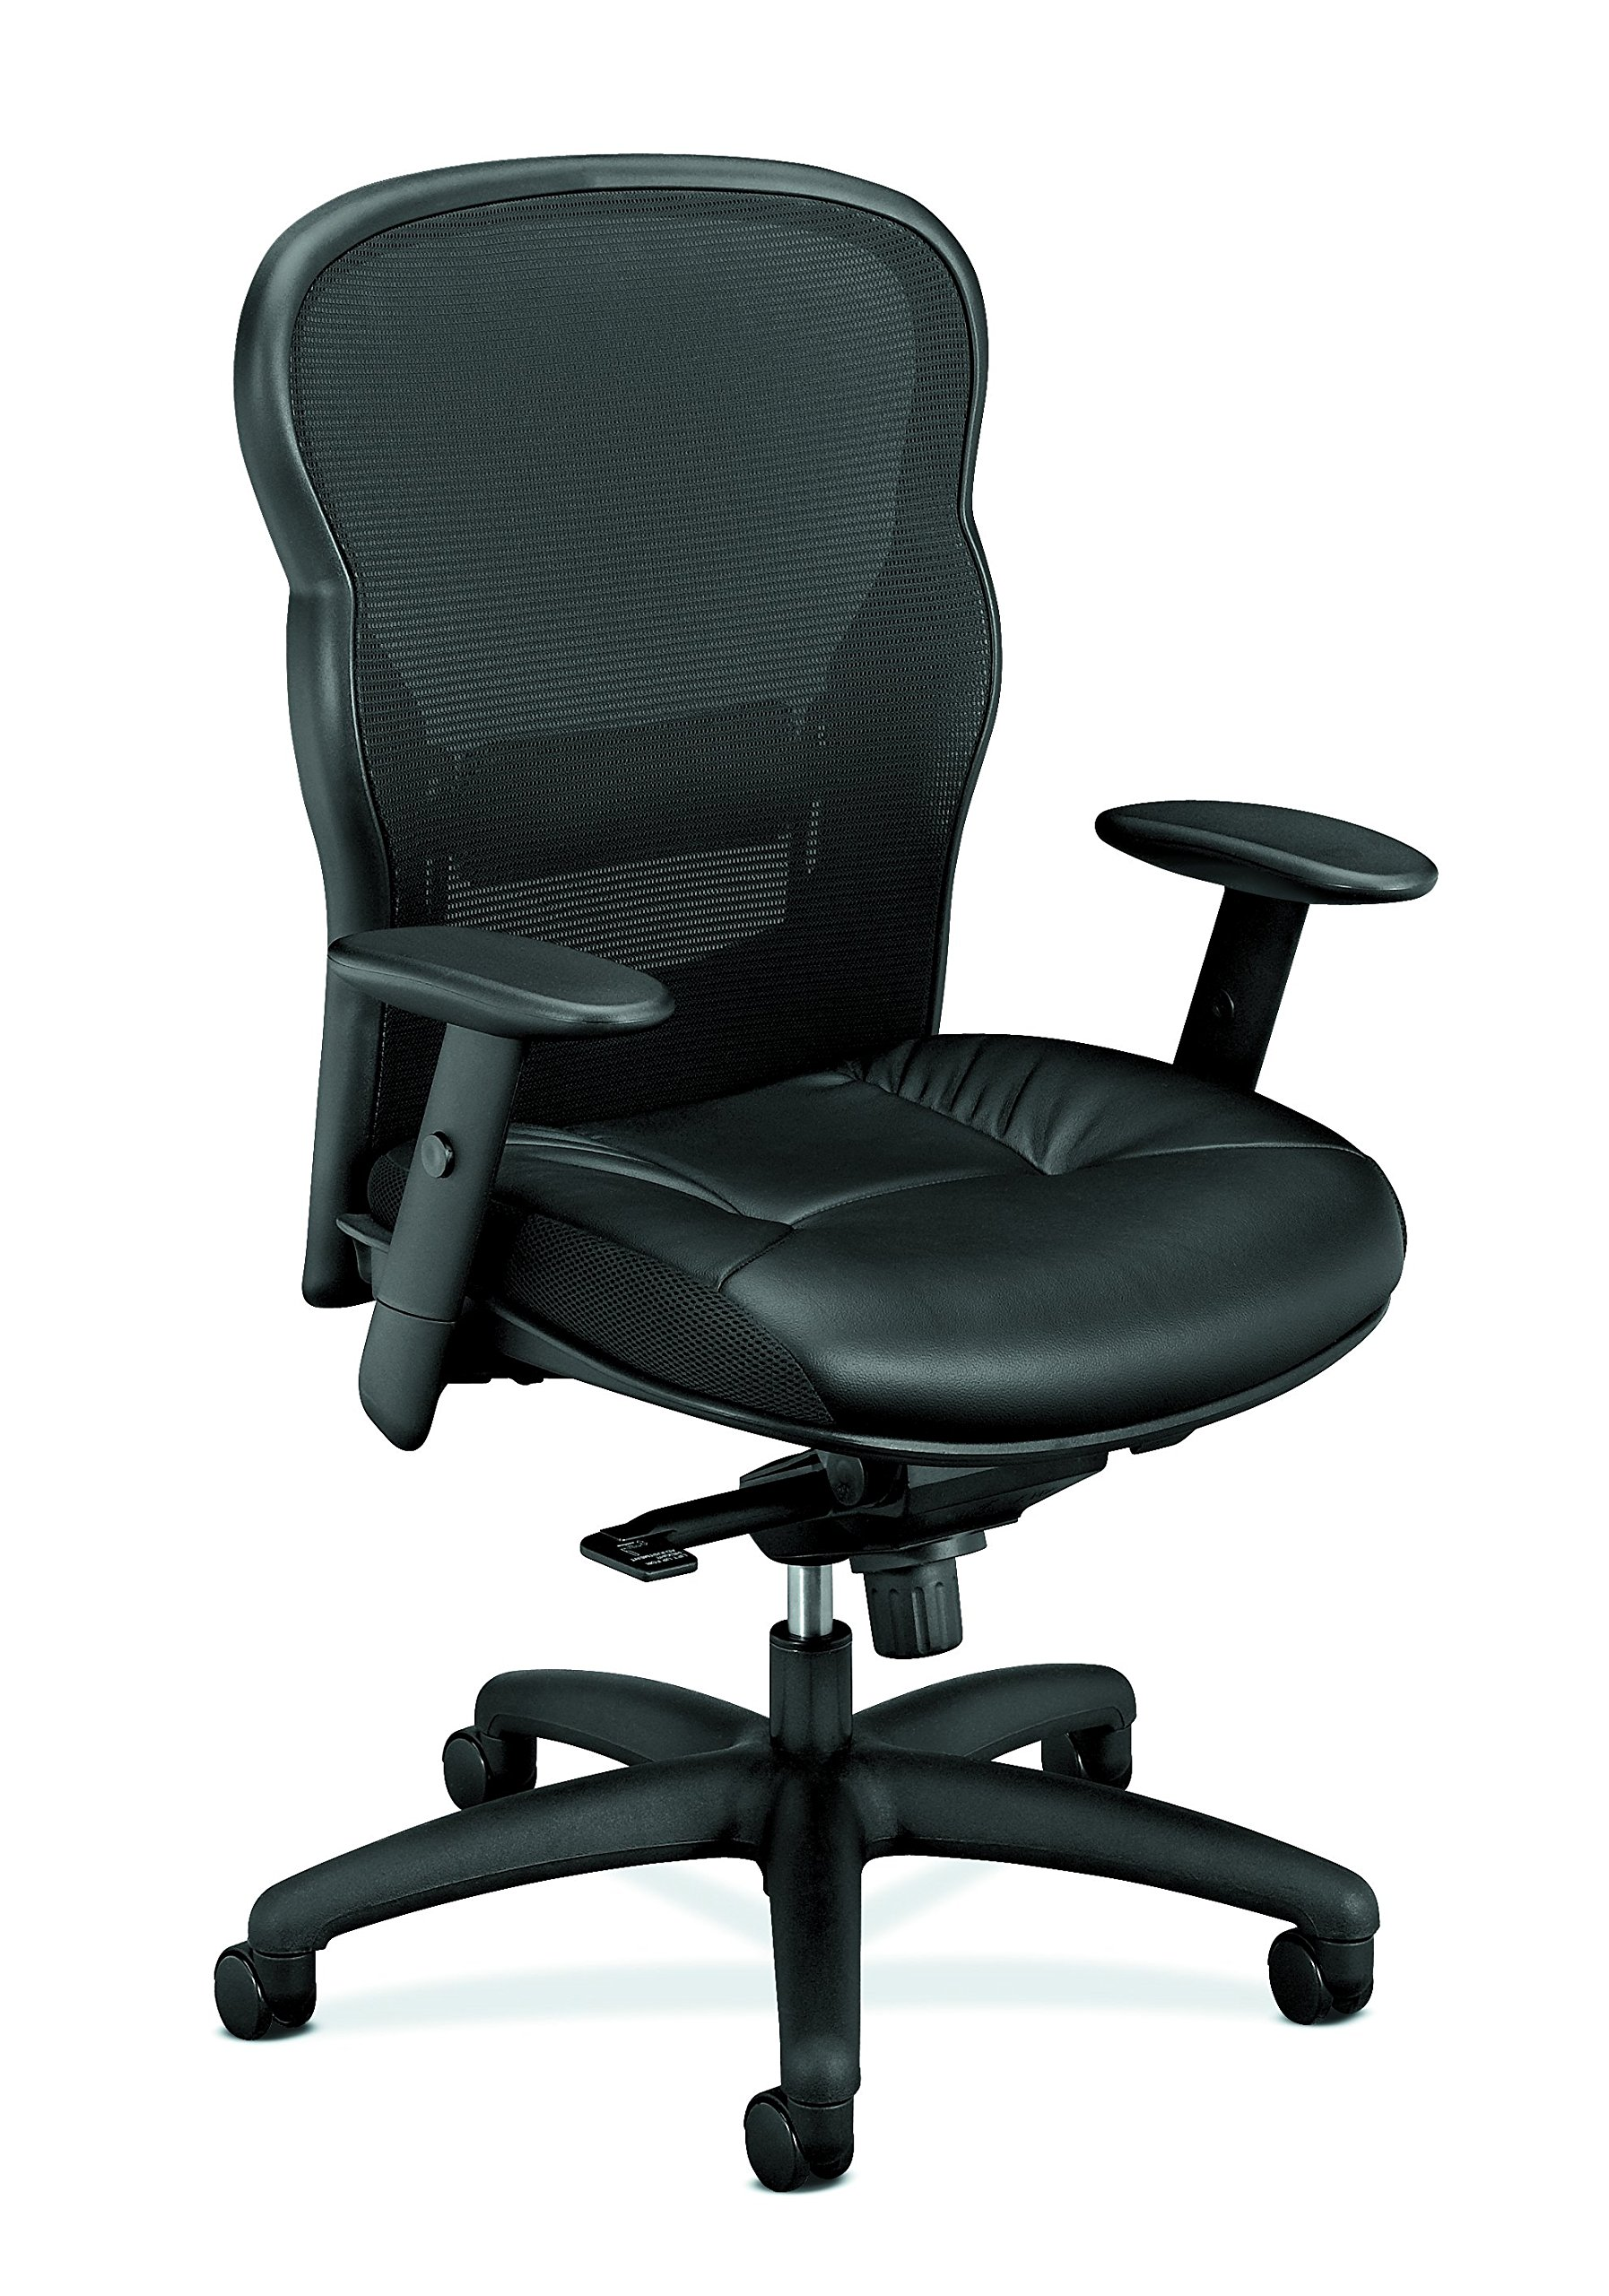 basyx by HON Executive Leather Chair - Mesh High-Back Task Chair with Arms, Black (HVL701)